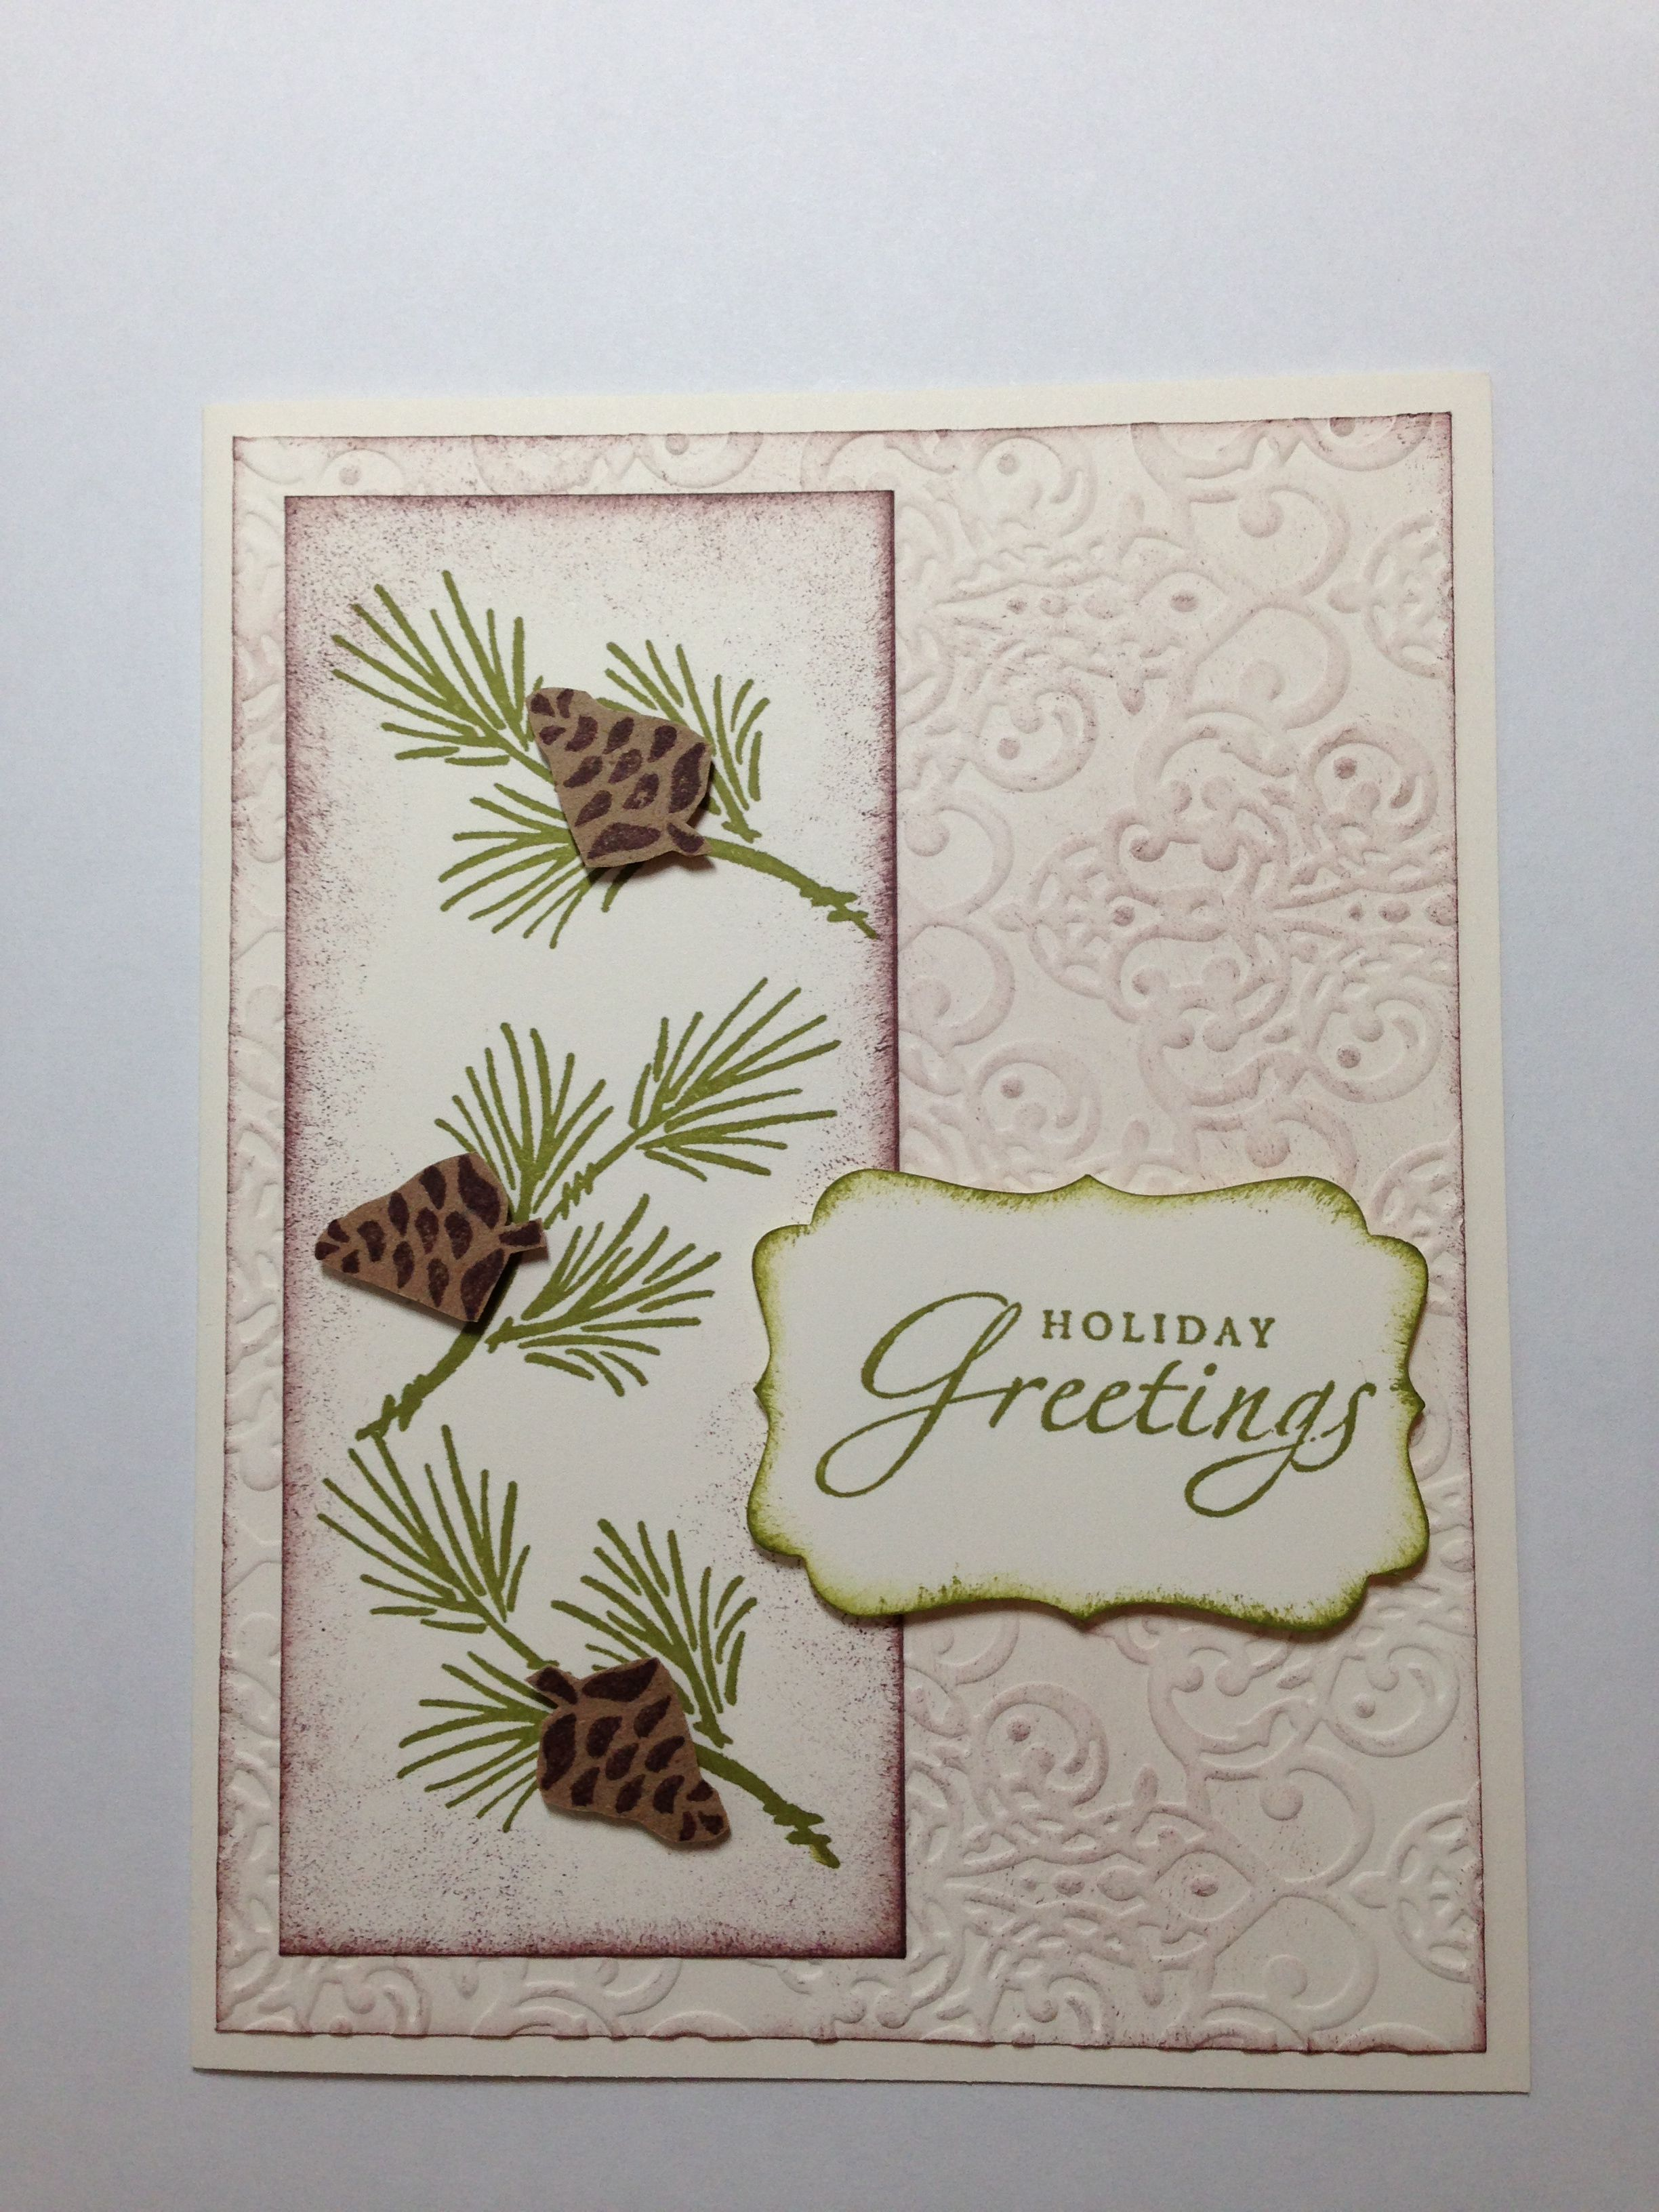 Stampin' Up! Christmas card